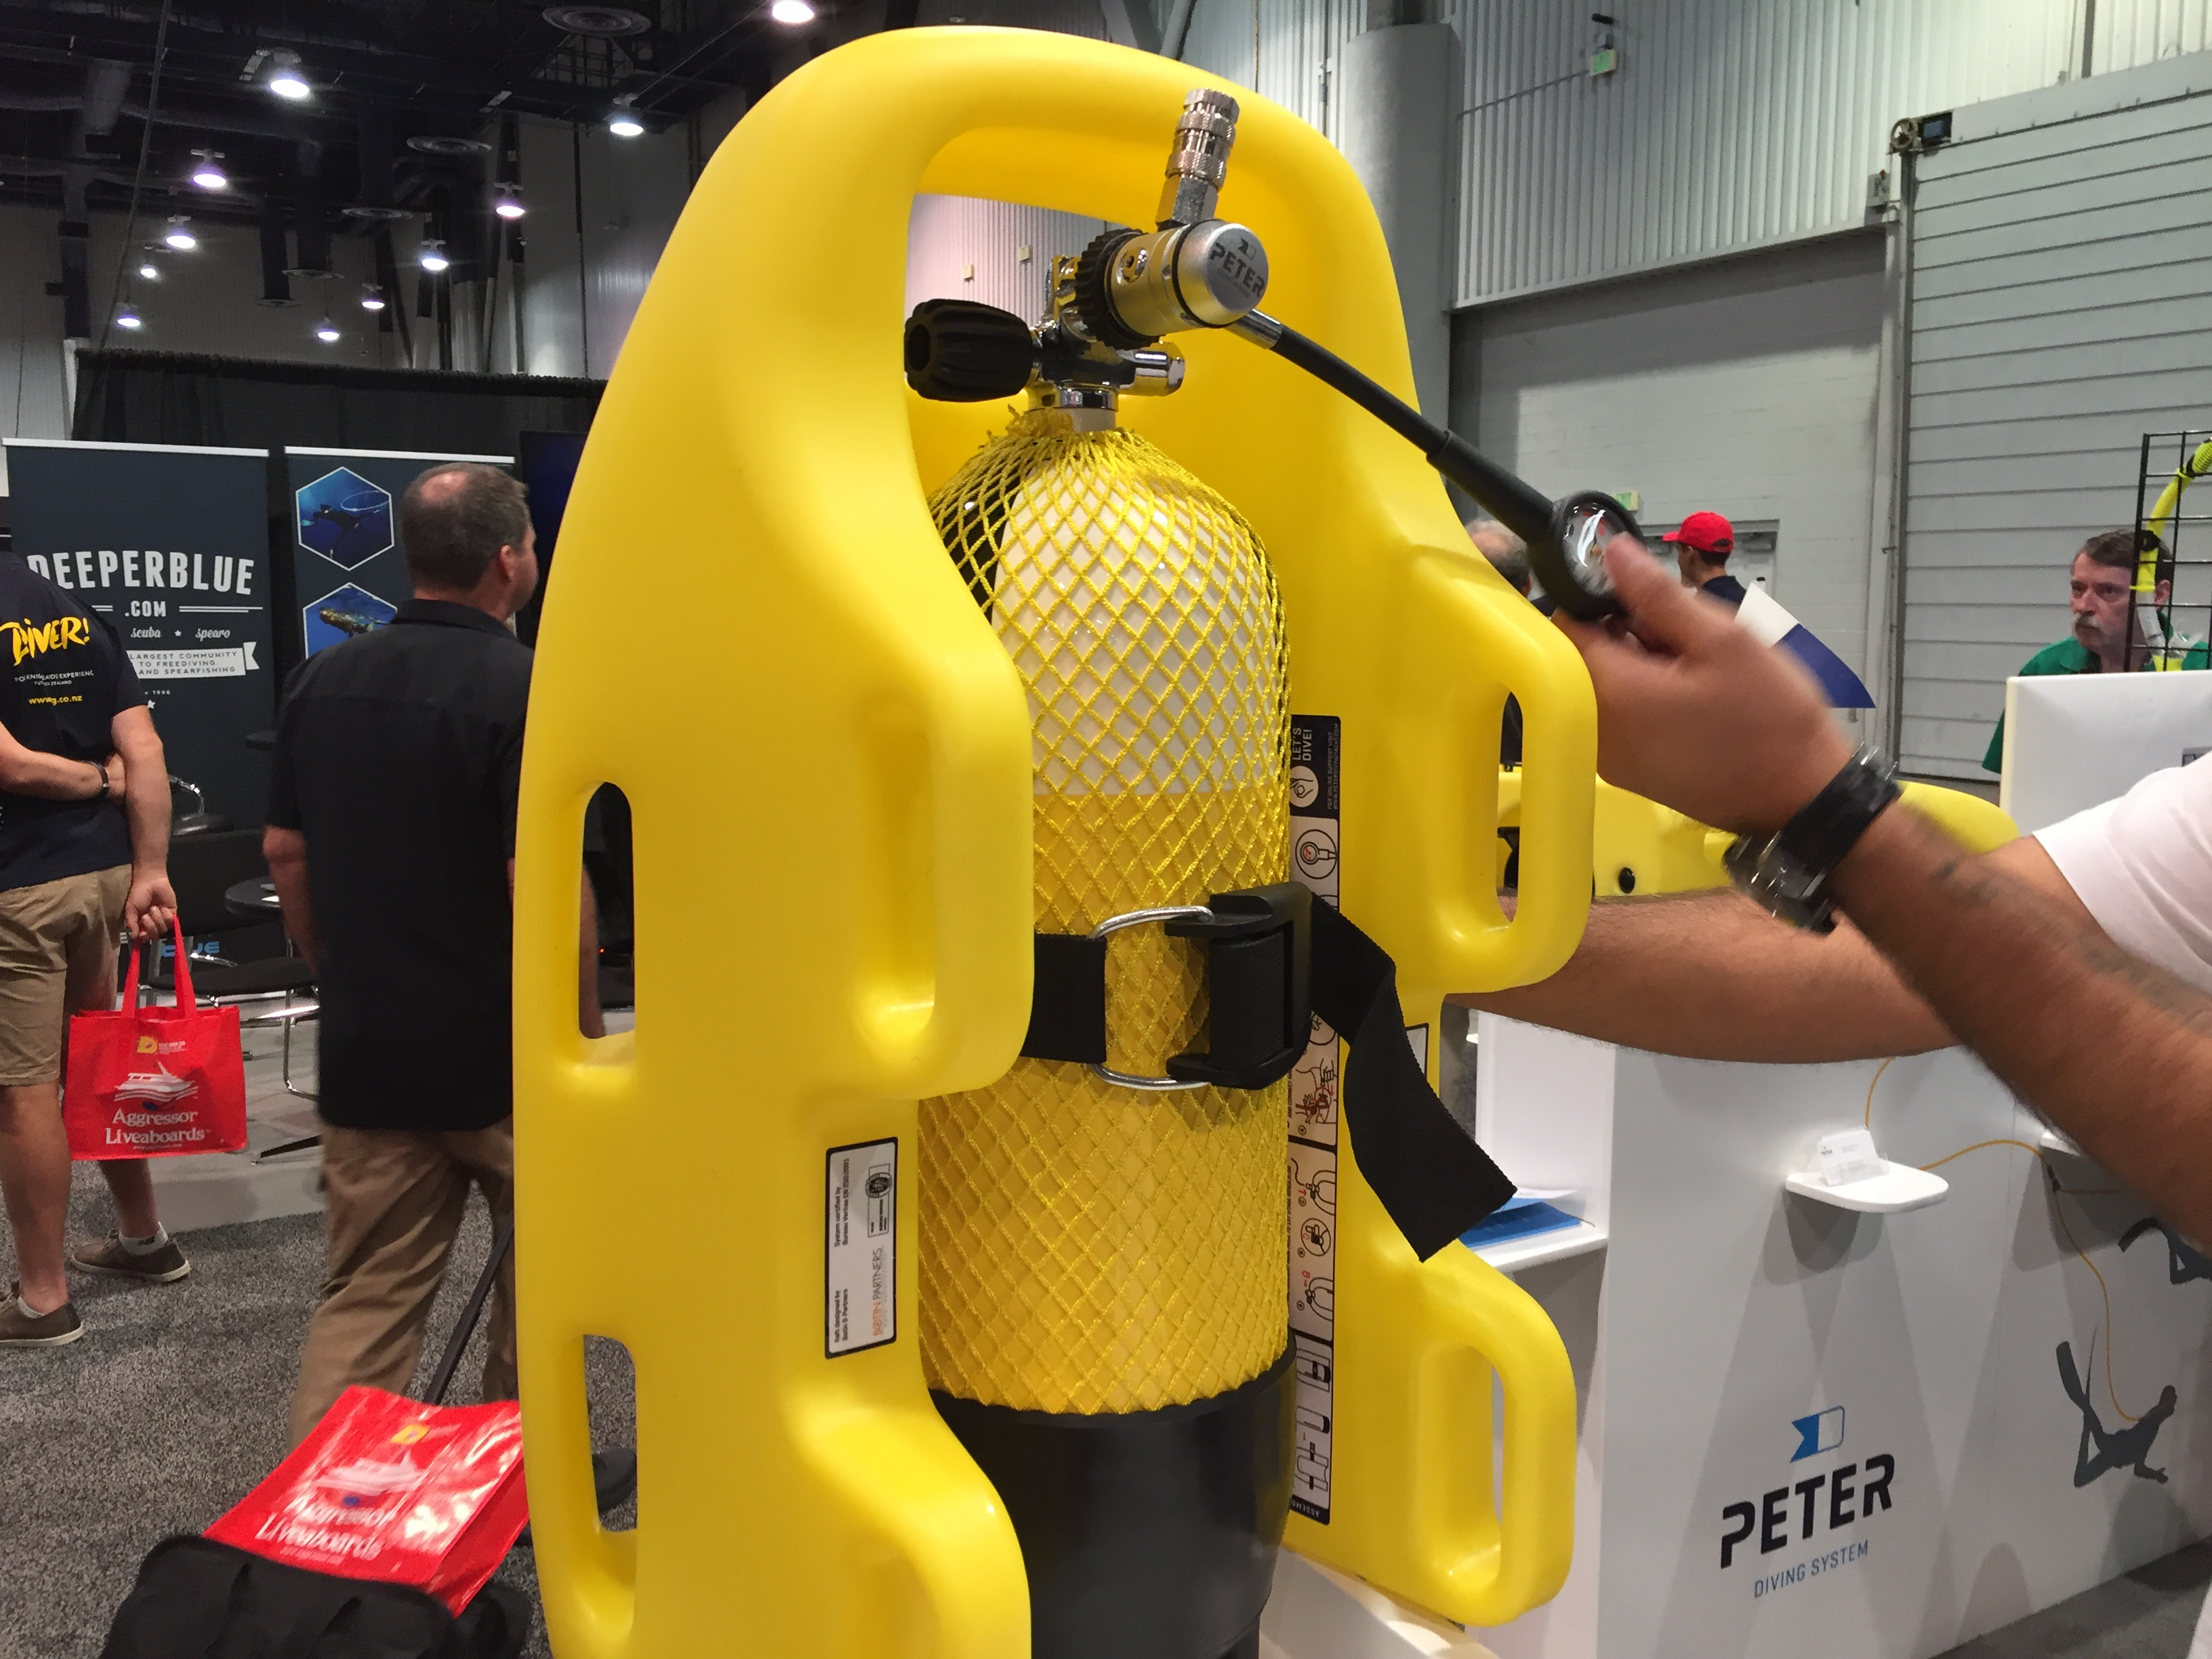 The Peter Diving System | MaduroDive Blog